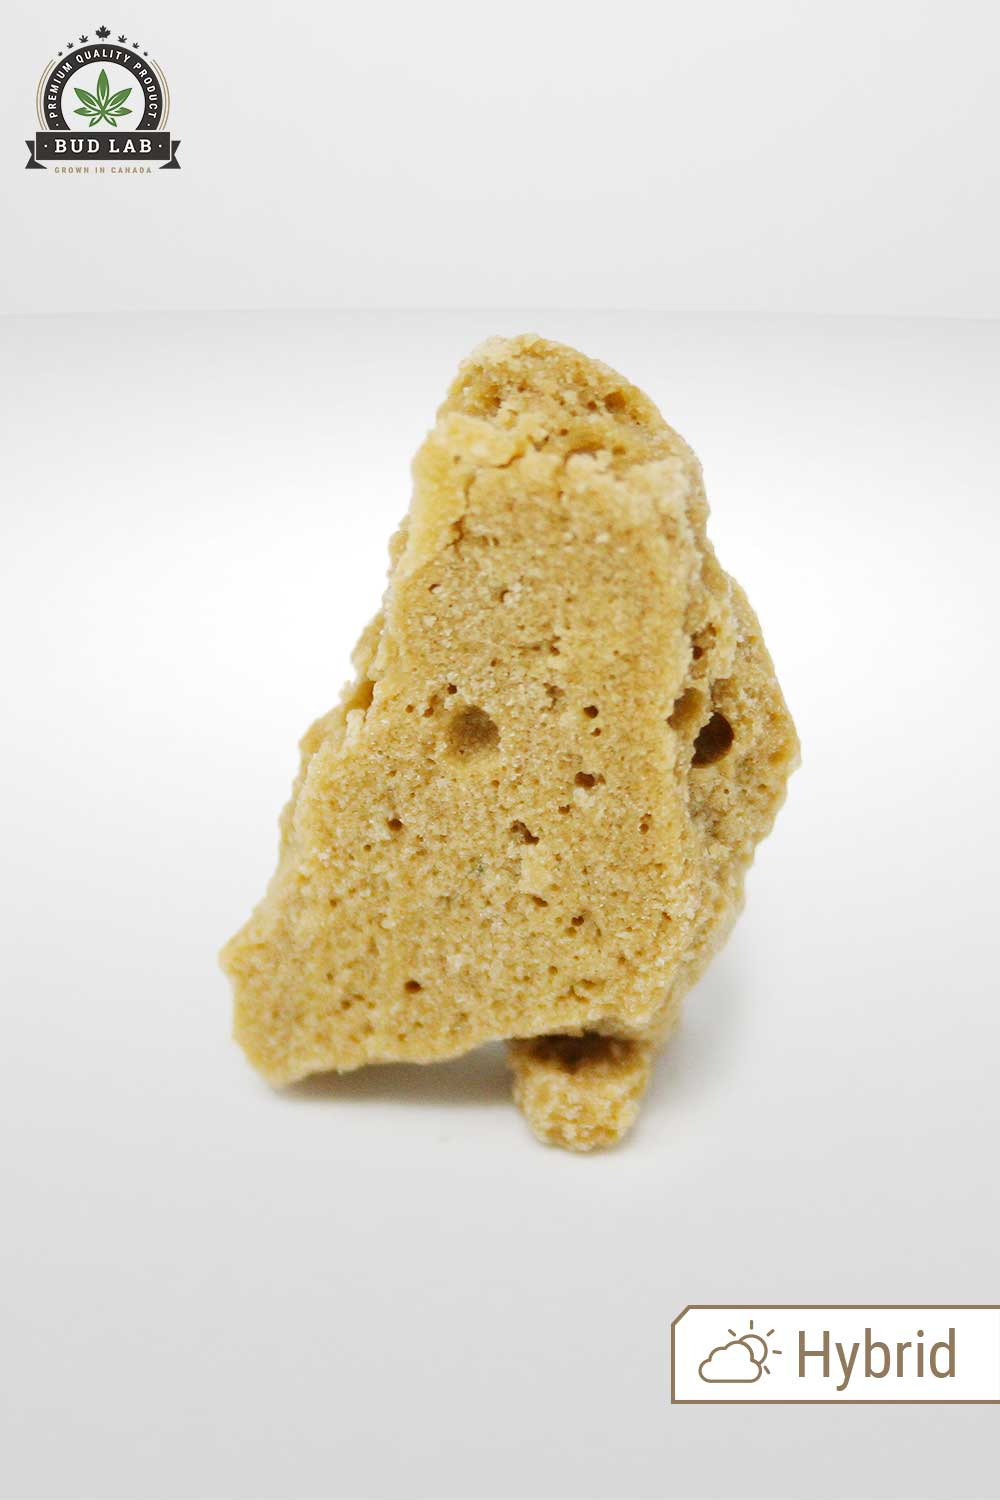 BudLab Budder Girl Scout Cookies, Product Only View